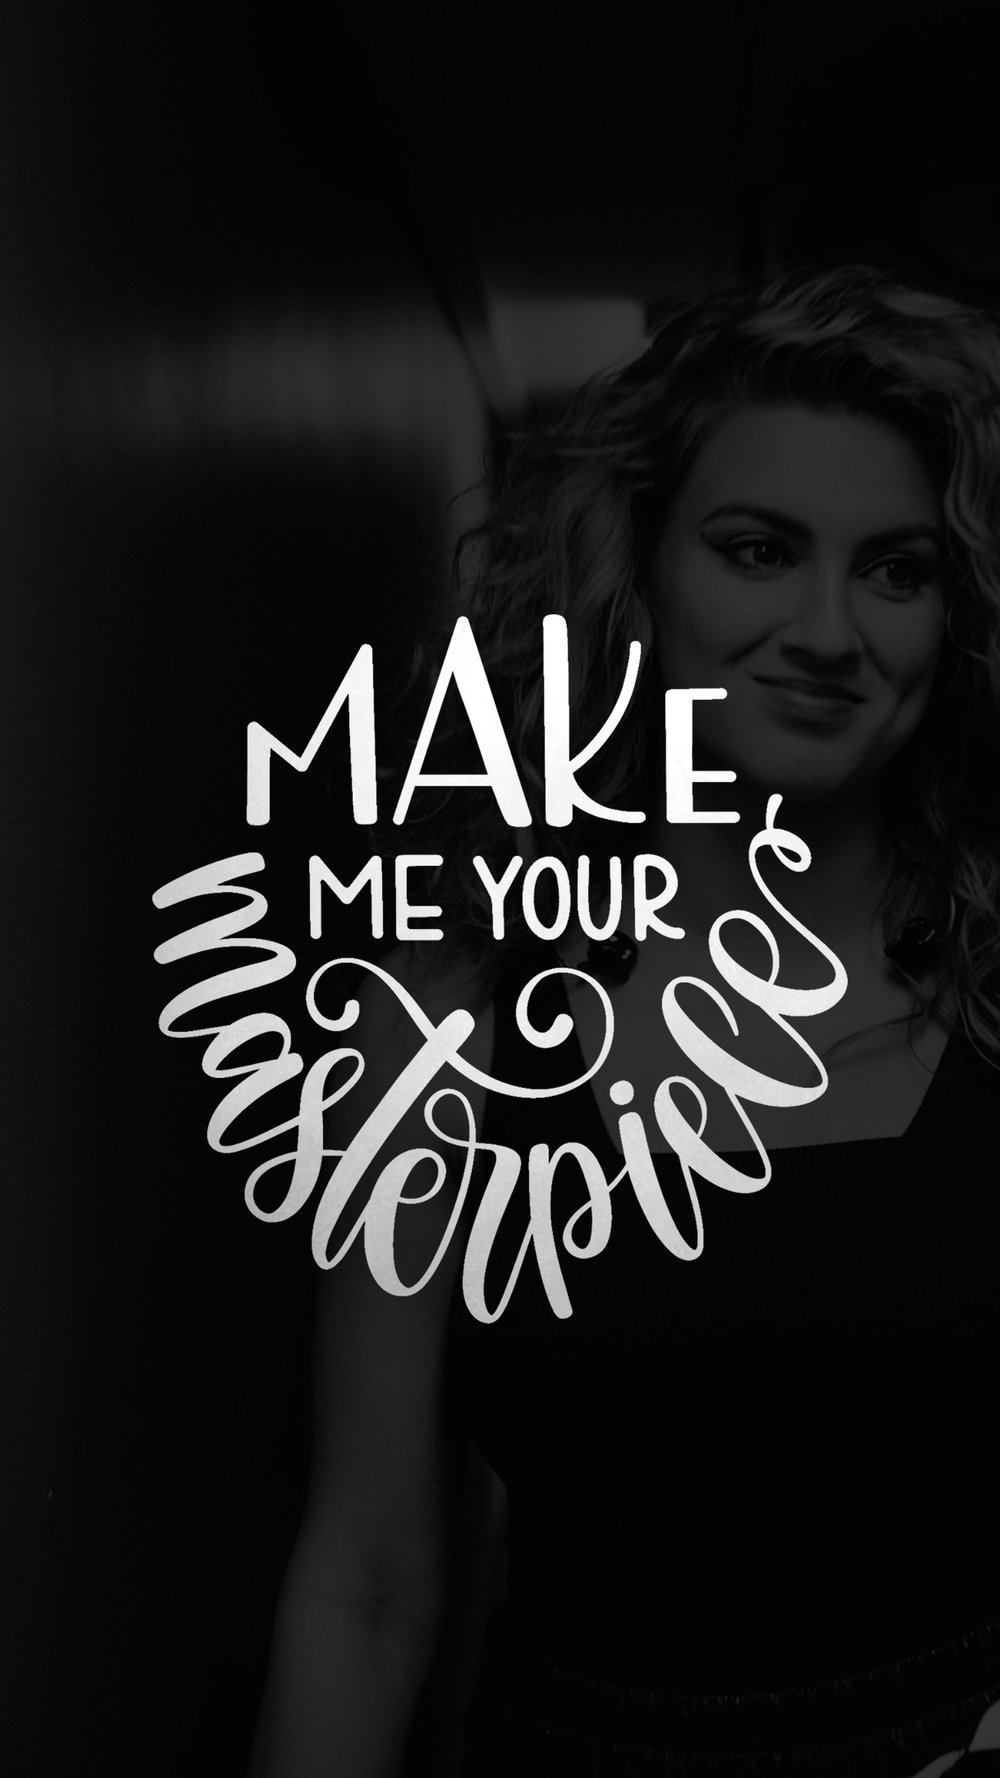 torikelly-lockscreen38.jpg